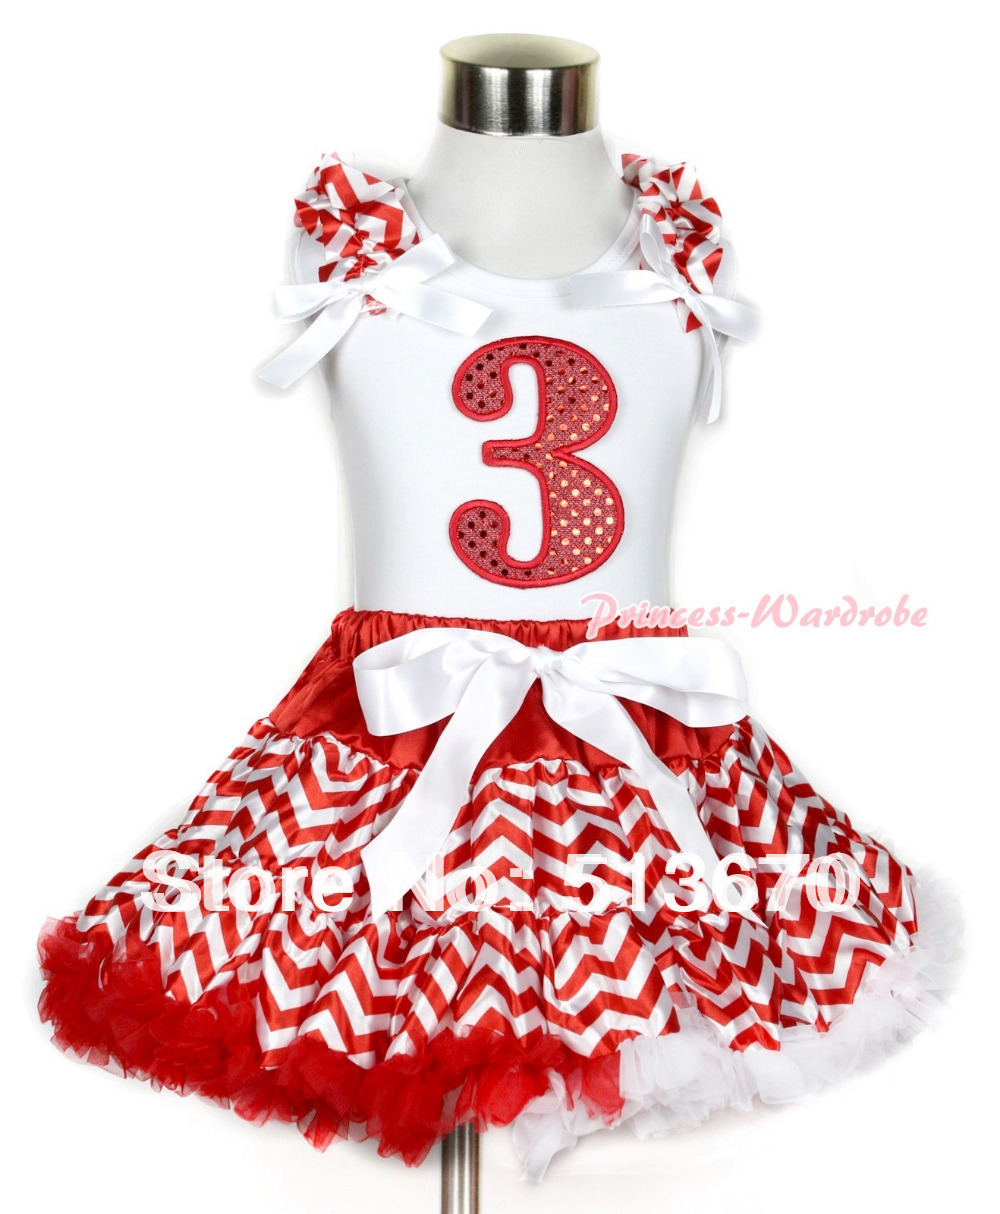 Xmas White Tank Top 3rd Sparkle Red Birthday Number Red White Wave Ruffles & White Bow & Red White Wave Pettiskirt MAMG748 red black 8 layered pettiskirt red sparkle number ruffle red bow tank top mamg575